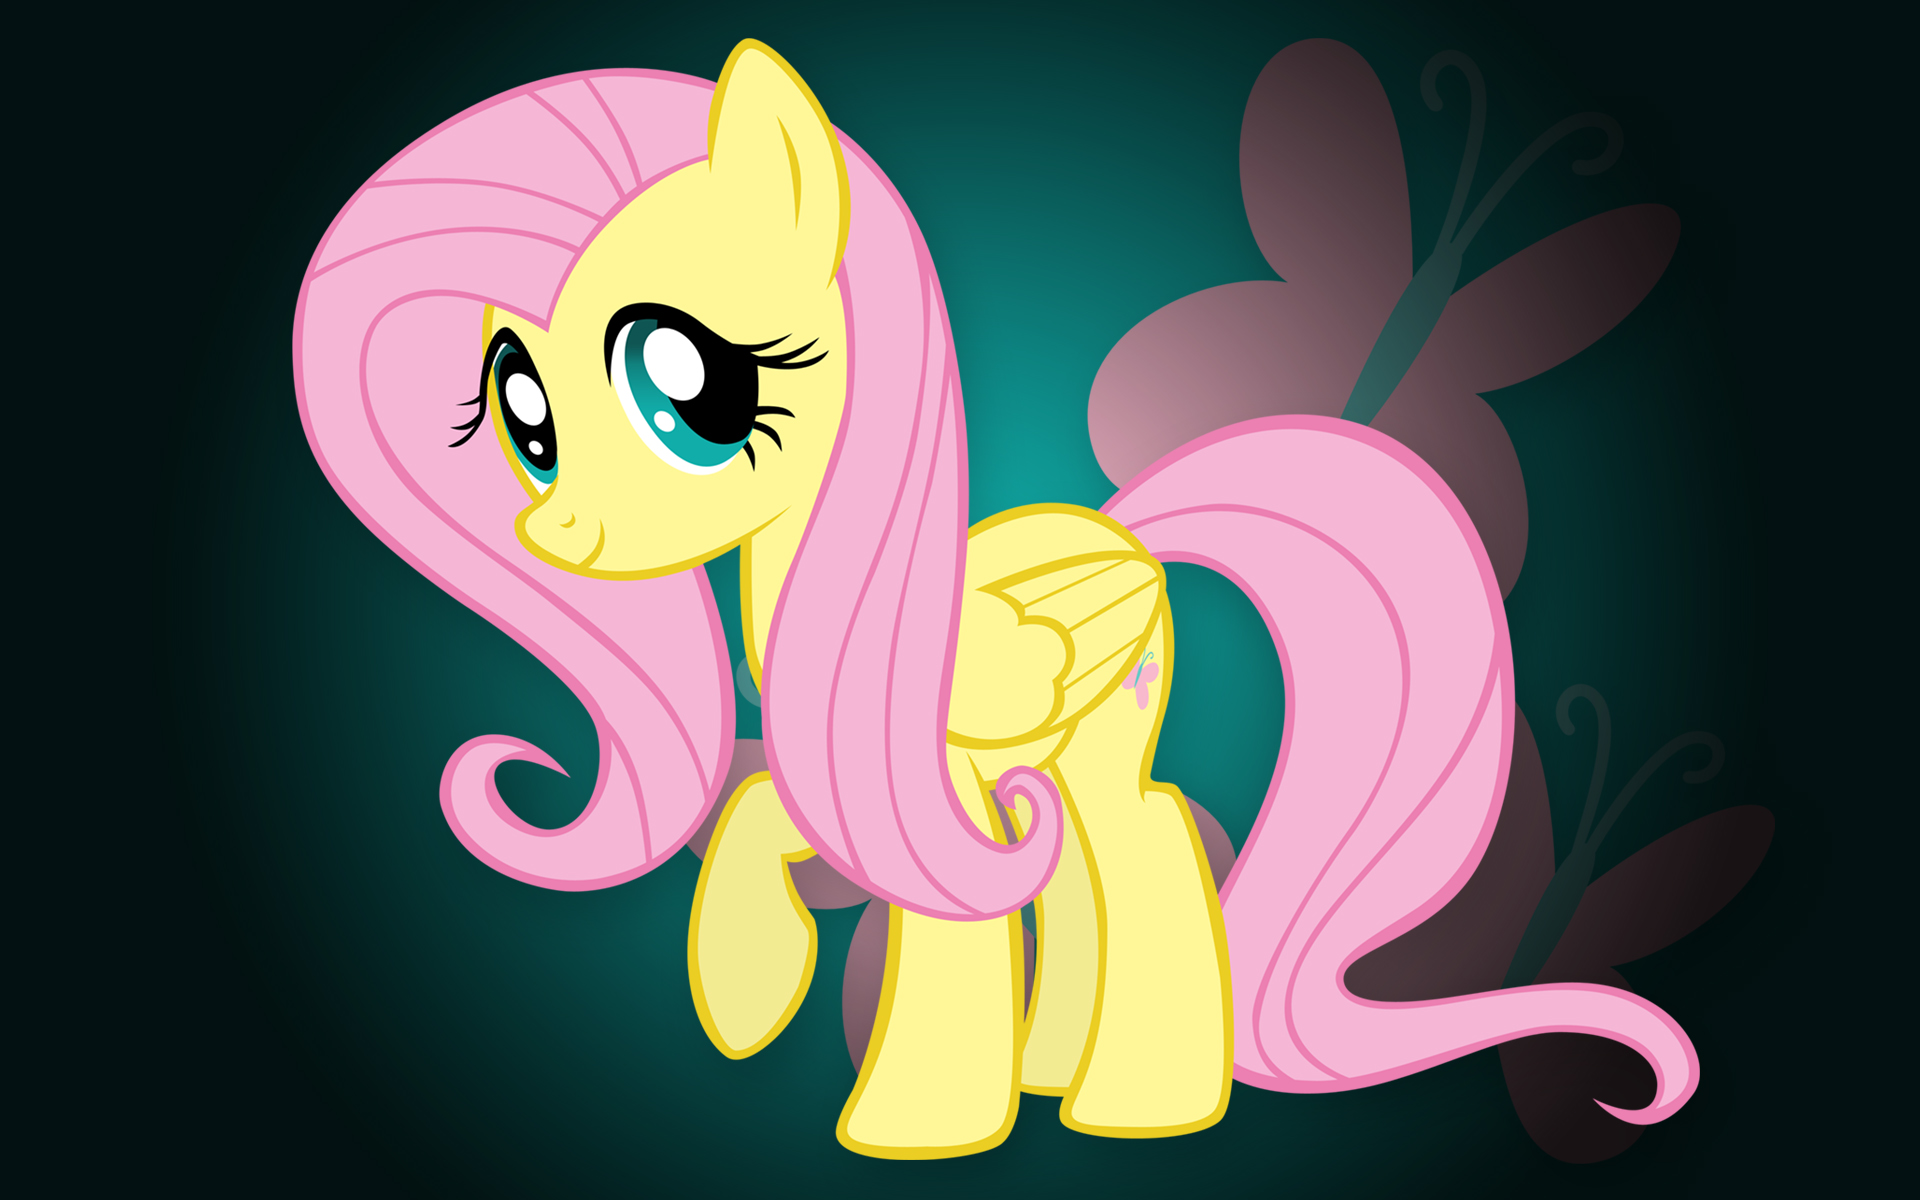 Mlp Fluttershy wallpaper   614206 1920x1200